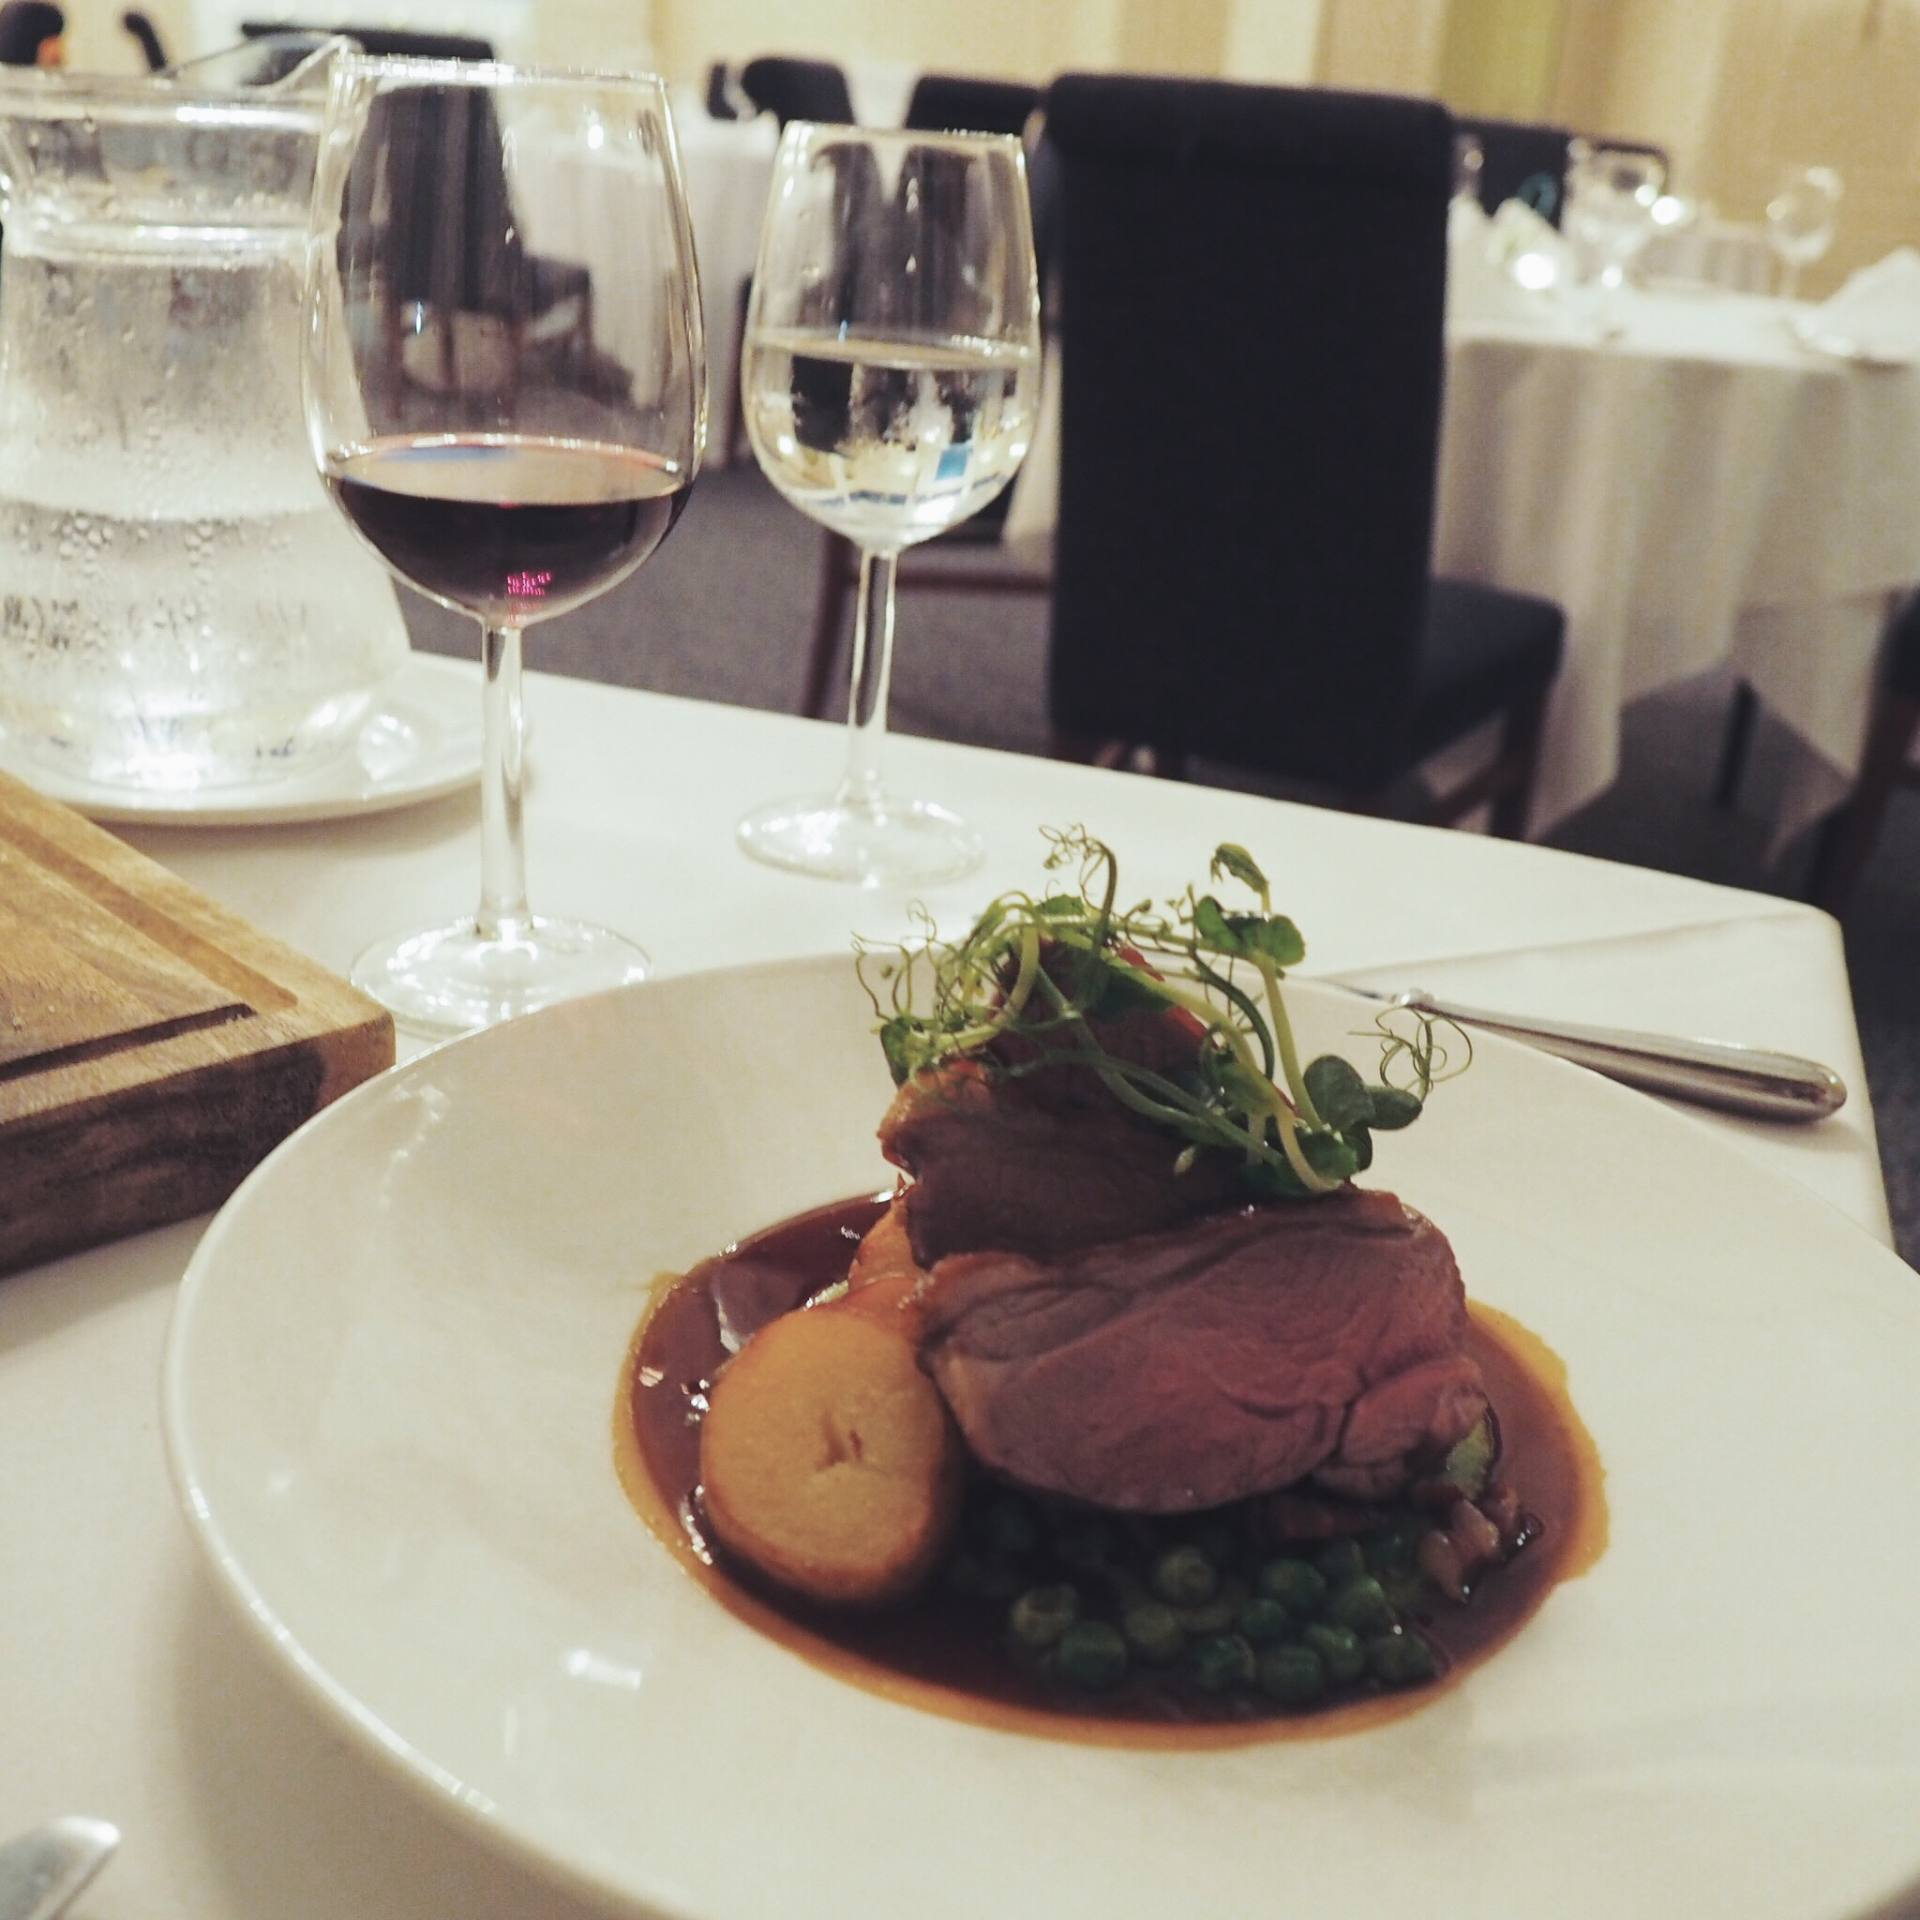 Dinner at the Eliot Restaurant, Coed-Y-Mwster